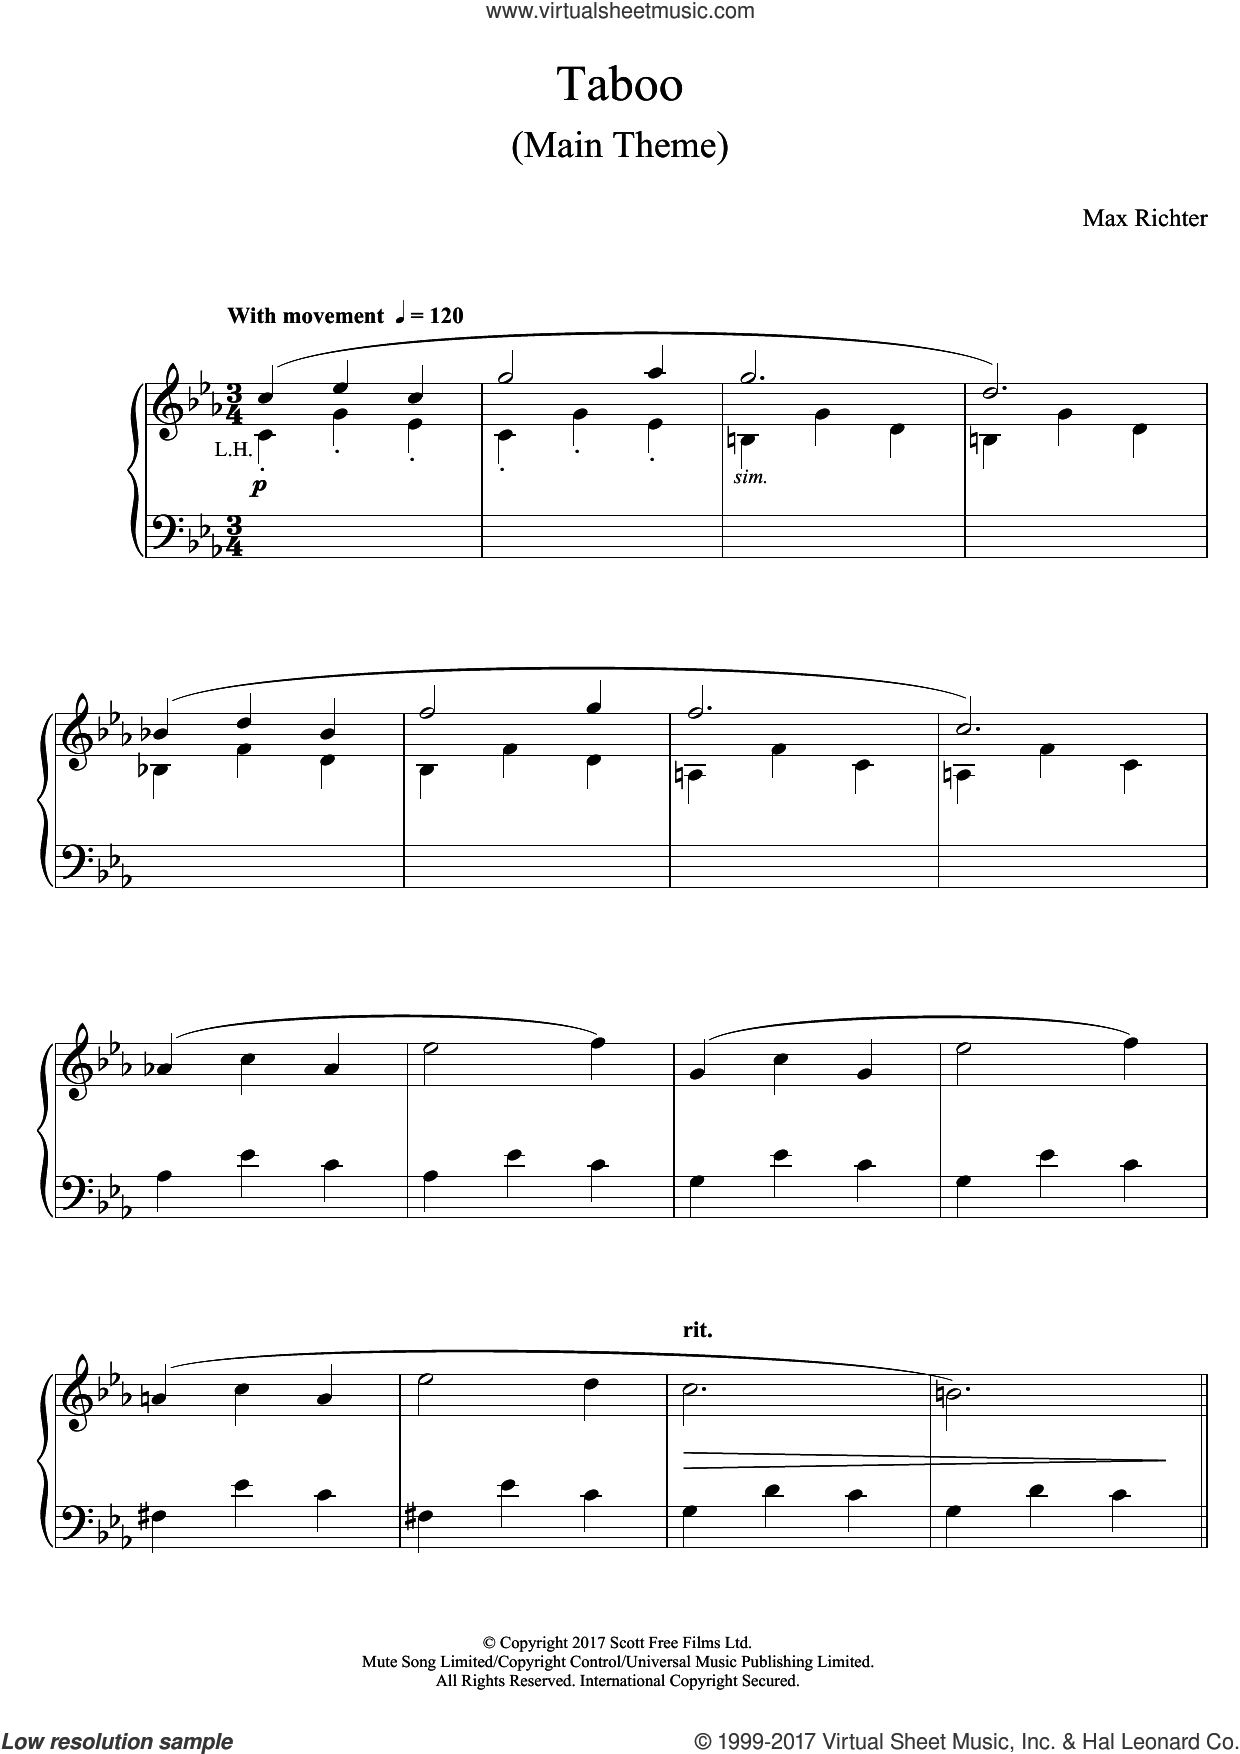 Taboo (Main Theme) sheet music for piano solo by Max Richter, classical score, intermediate skill level